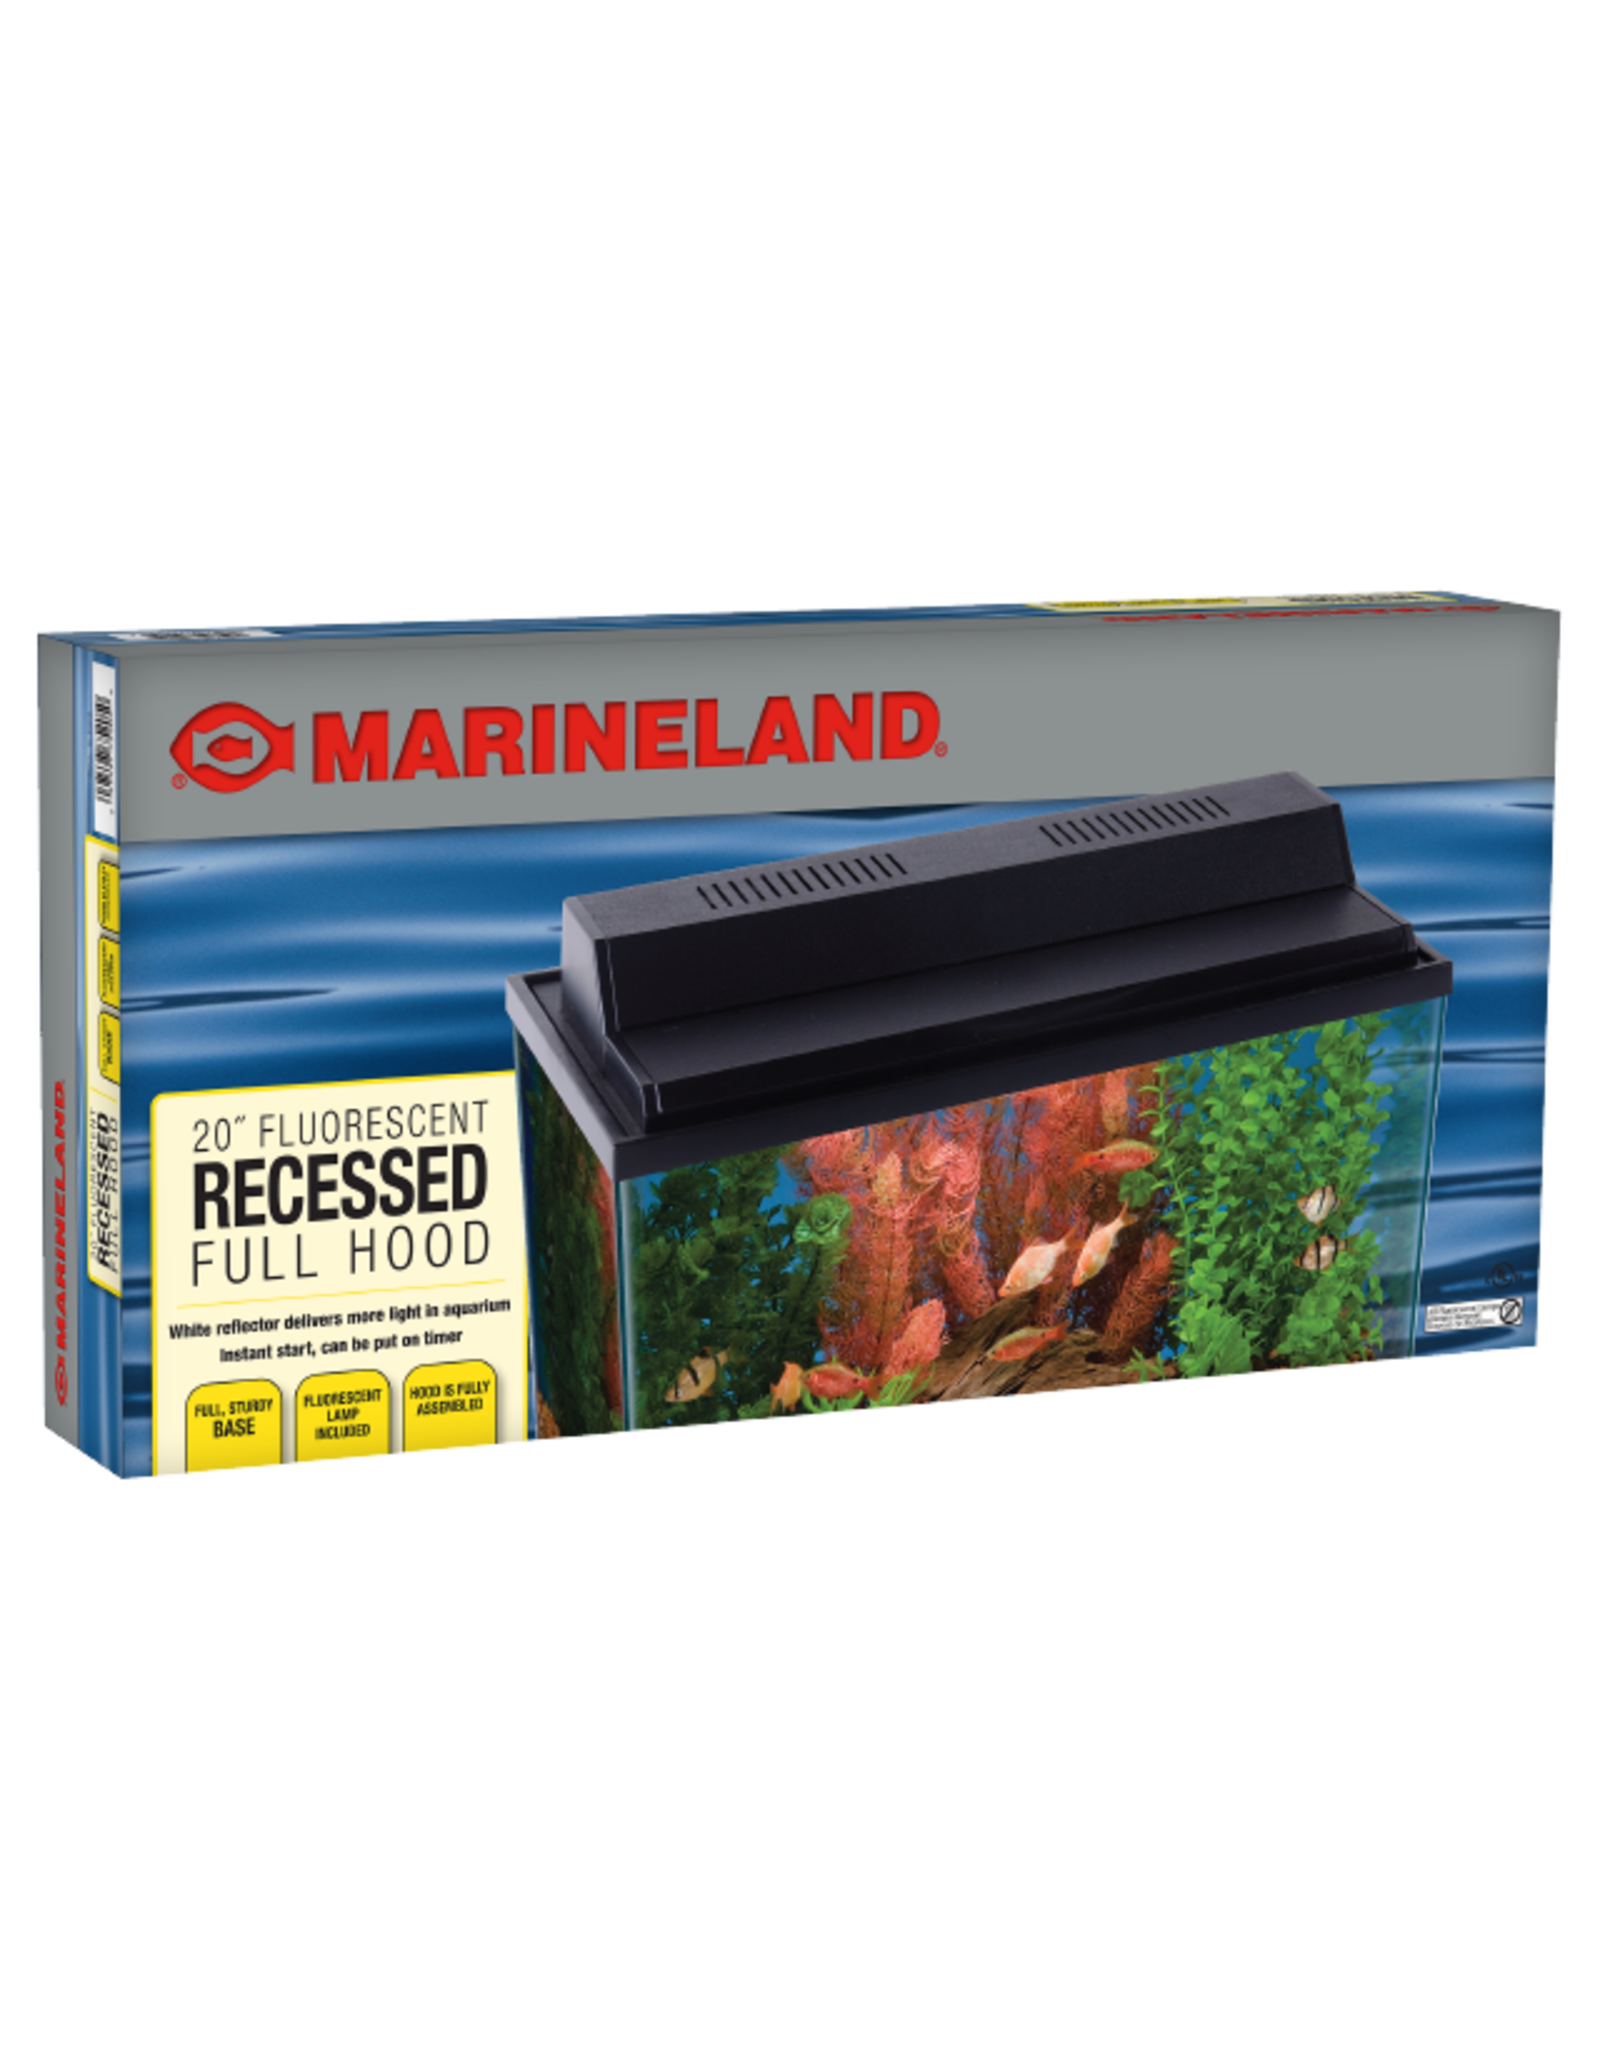 Marineland MARINELAND Recessed Full Hood Black